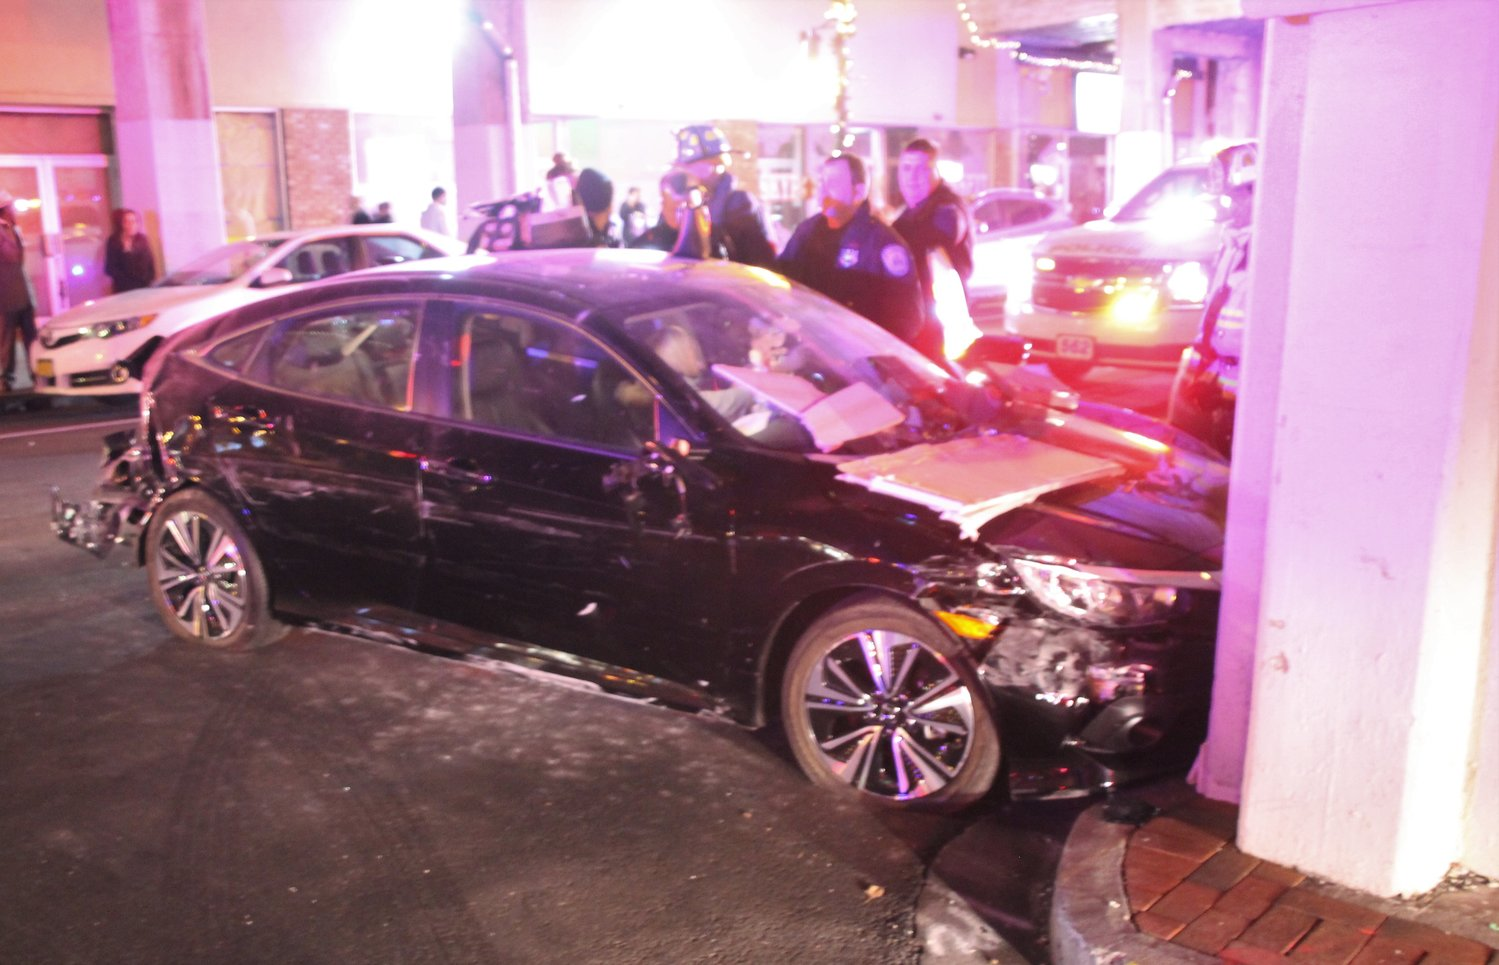 A drunk driver crashed her car into a storefront and a cement stanchion near the Lynbrook Long Island Rail Road on Sunday night.